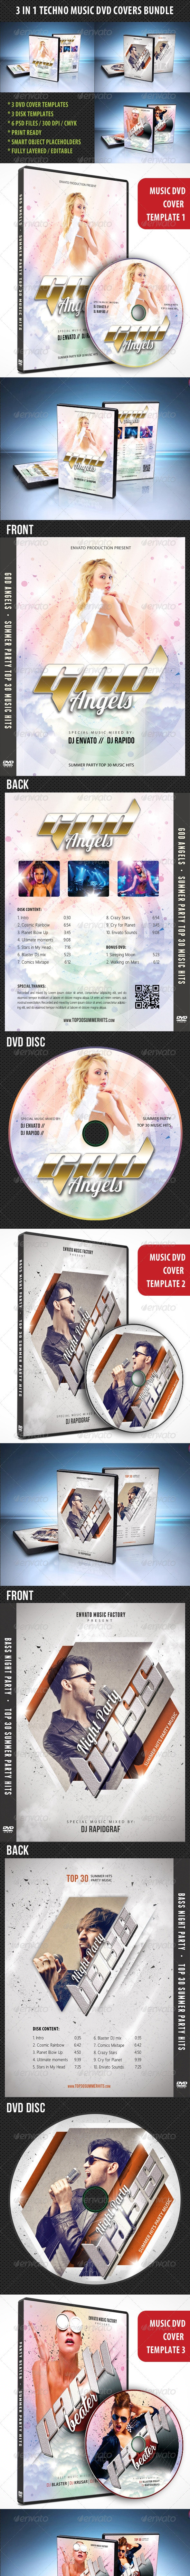 3 in 1 Music DVD Covers Bundle 03 - CD & DVD Artwork Print Templates